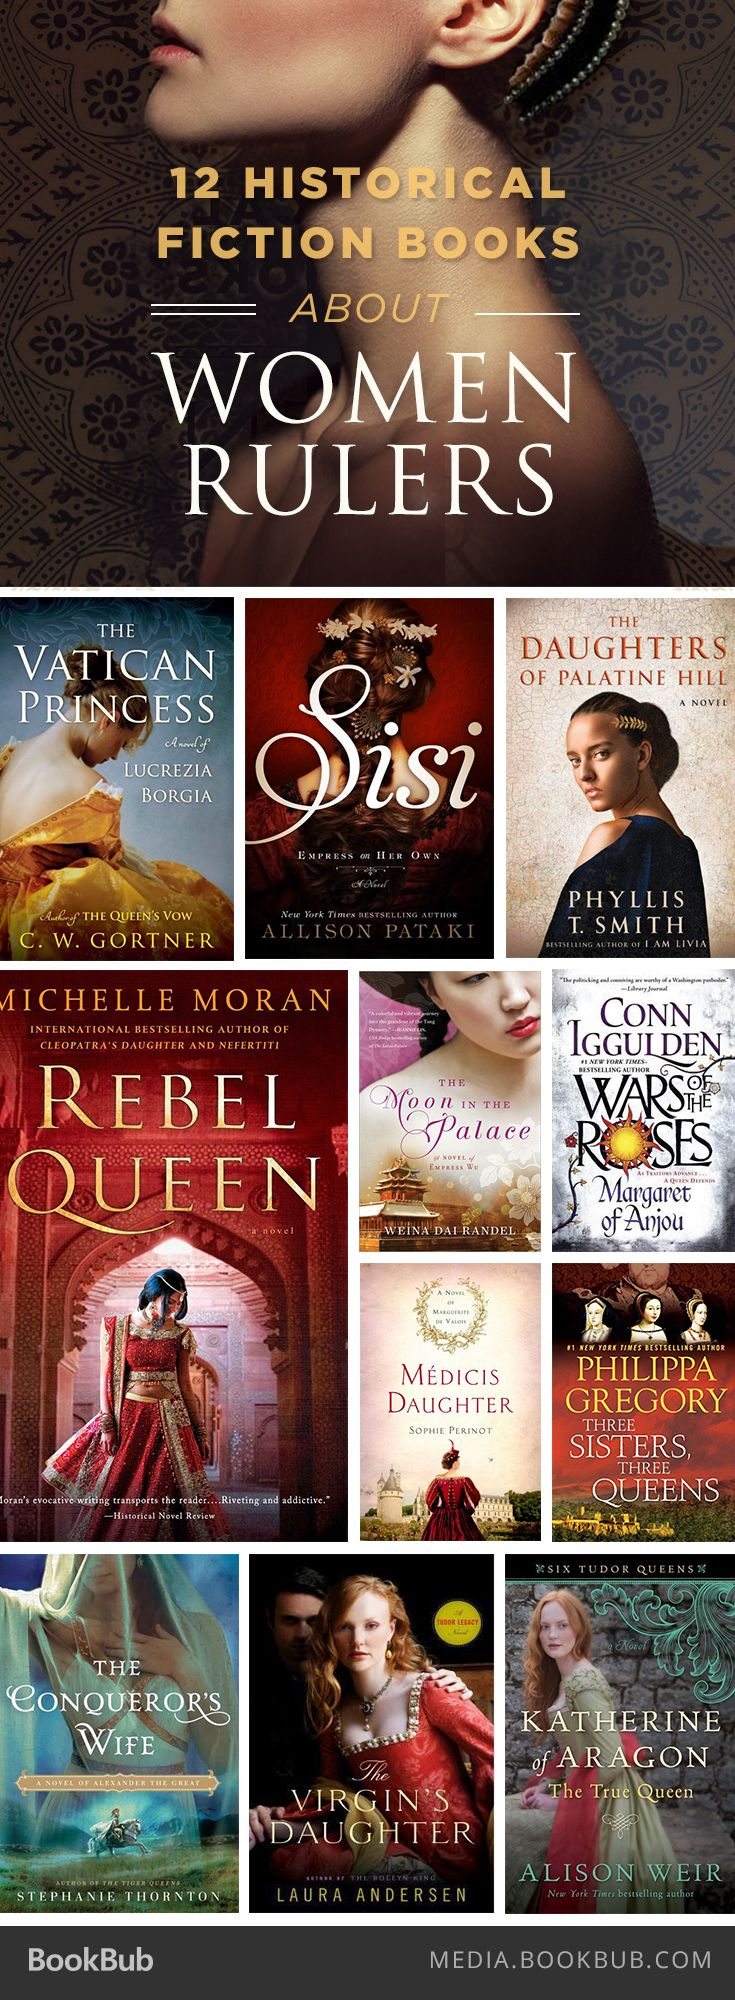 12 must-read historical fiction books about women rulers.